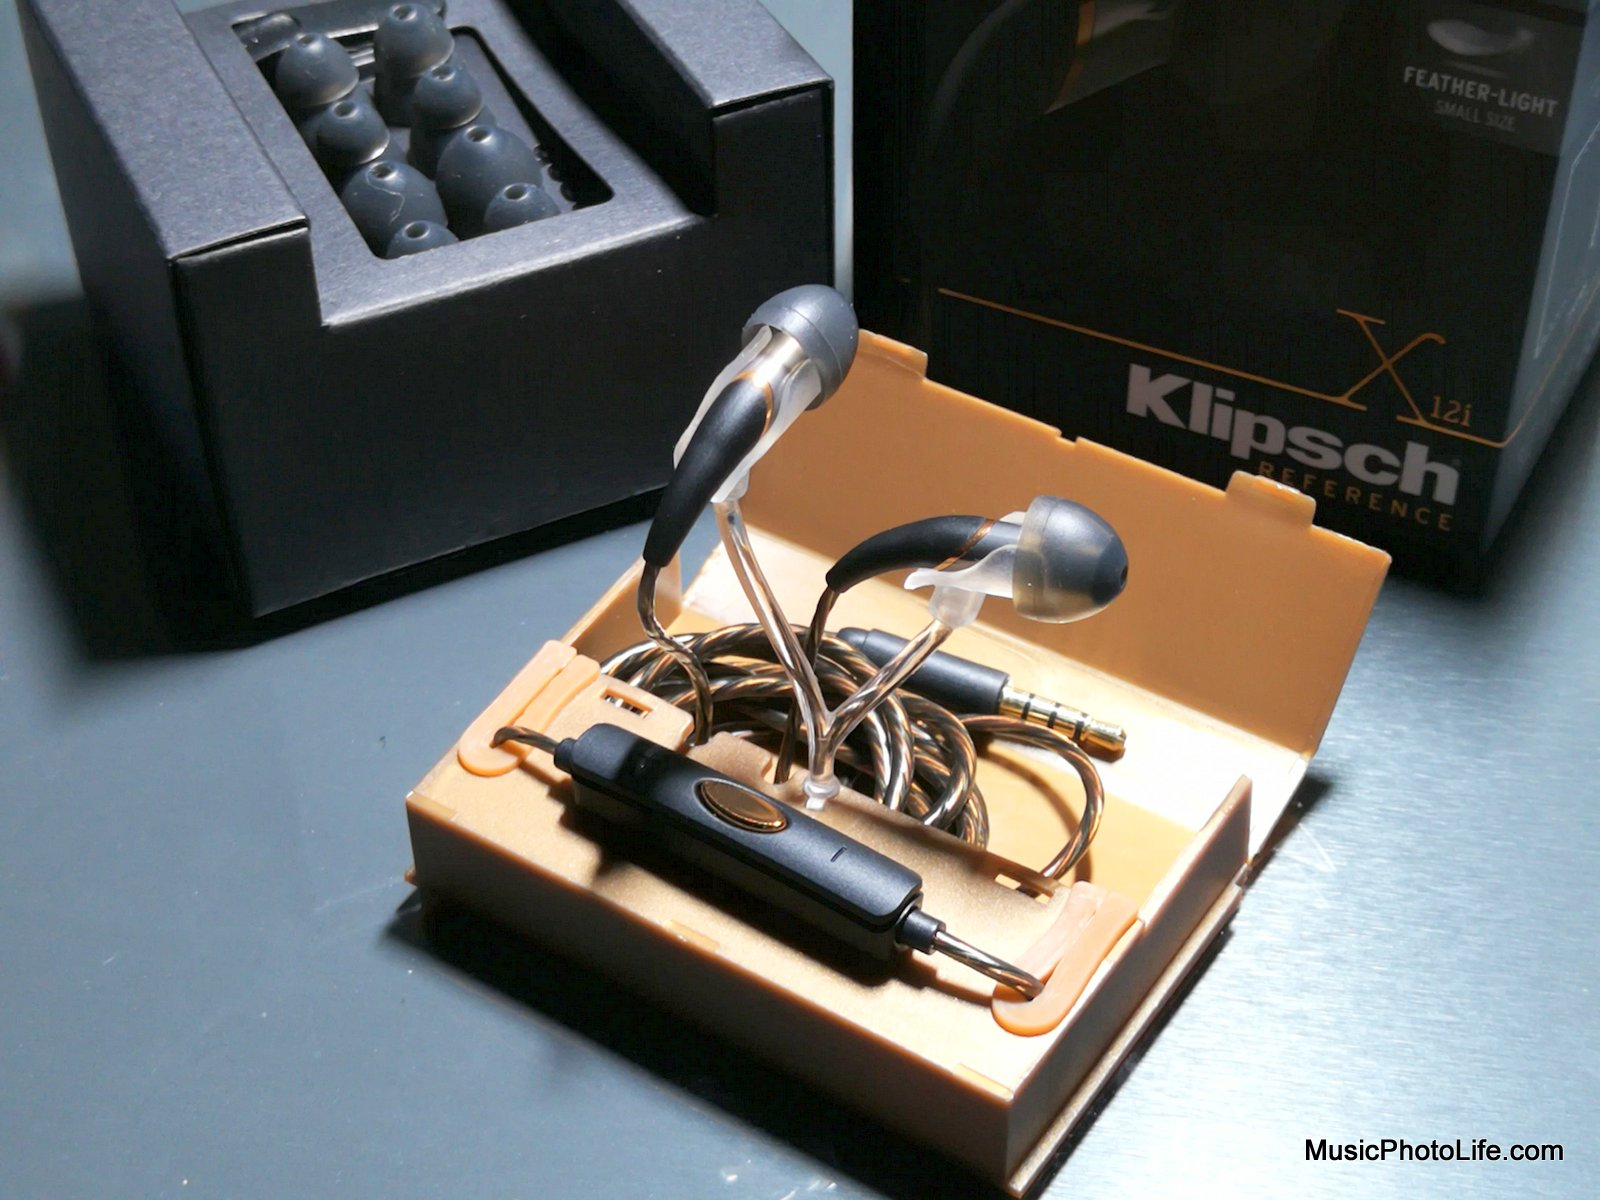 Klipsch X12i review by musicphotolife.com